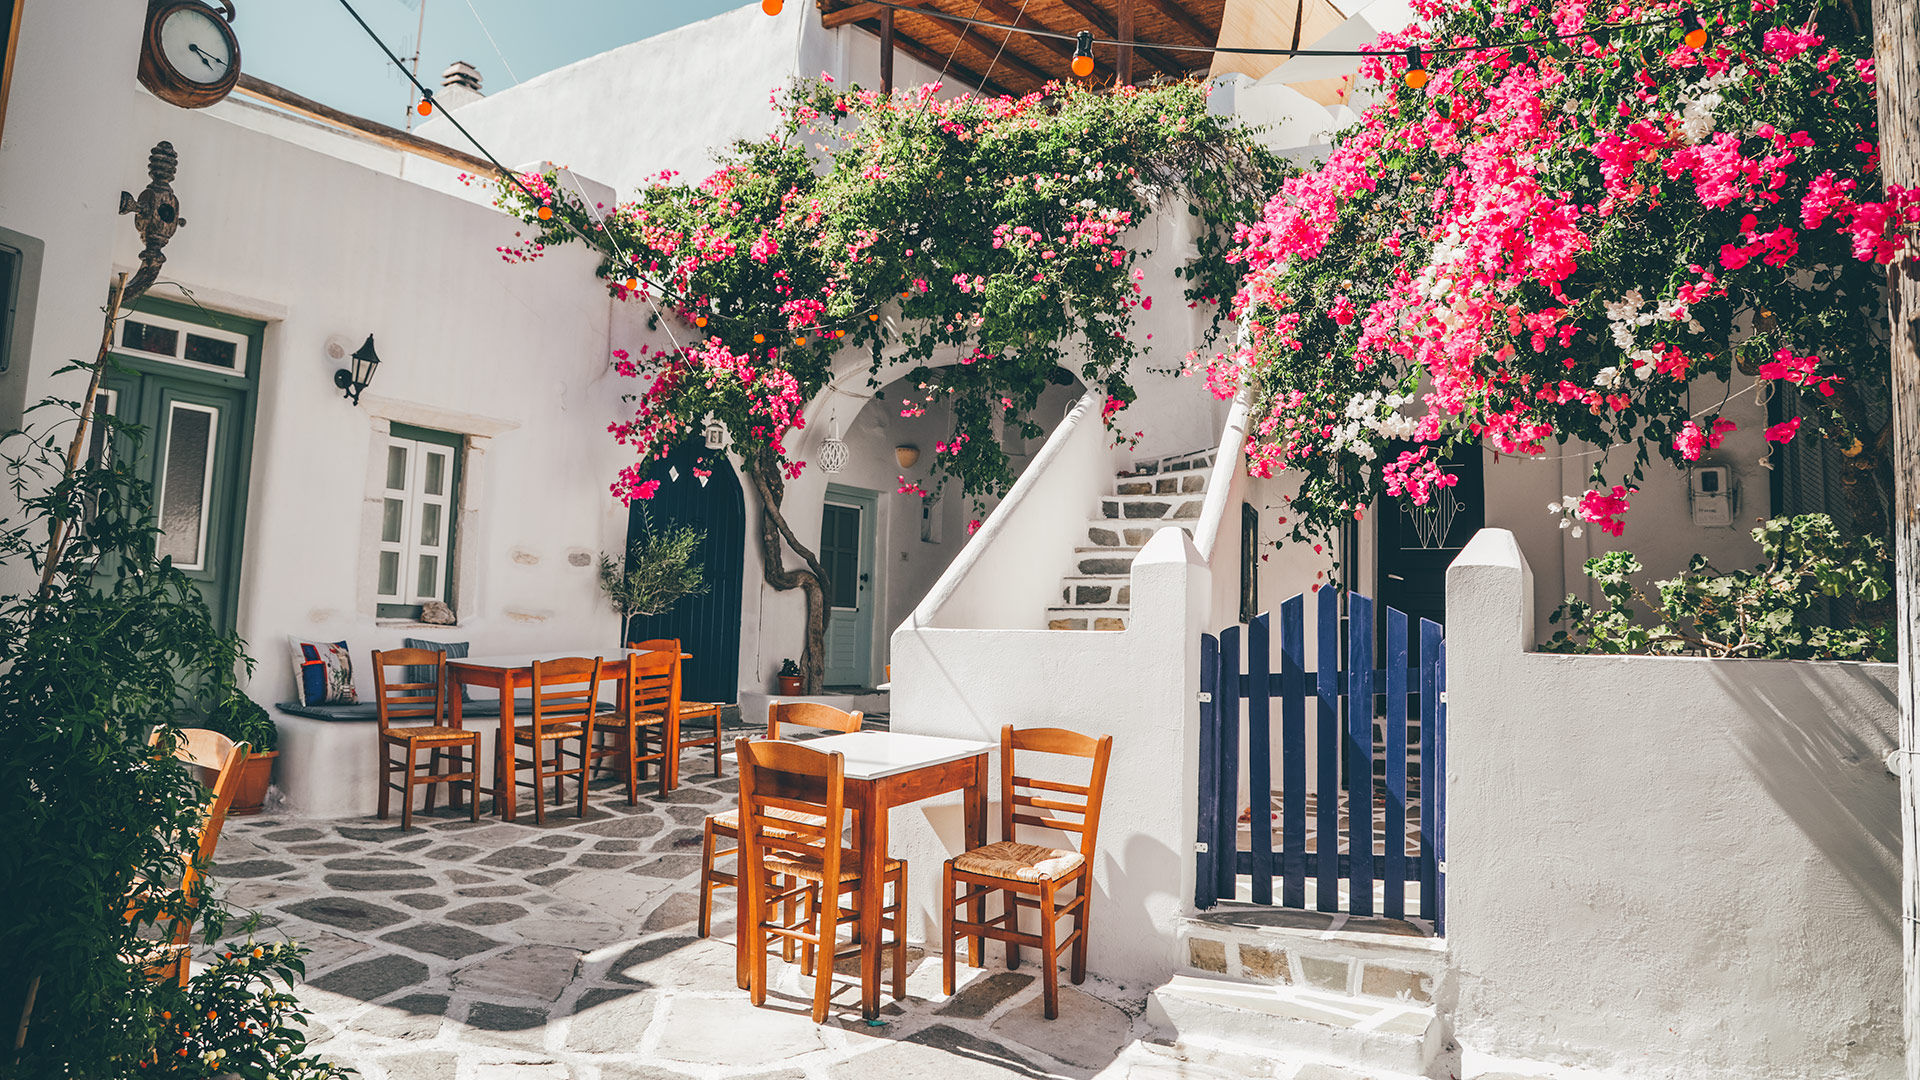 Ηopping between villages is the perfect follow-up to enjoying the lively atmosphere of the towns and beautiful beaches of Paros